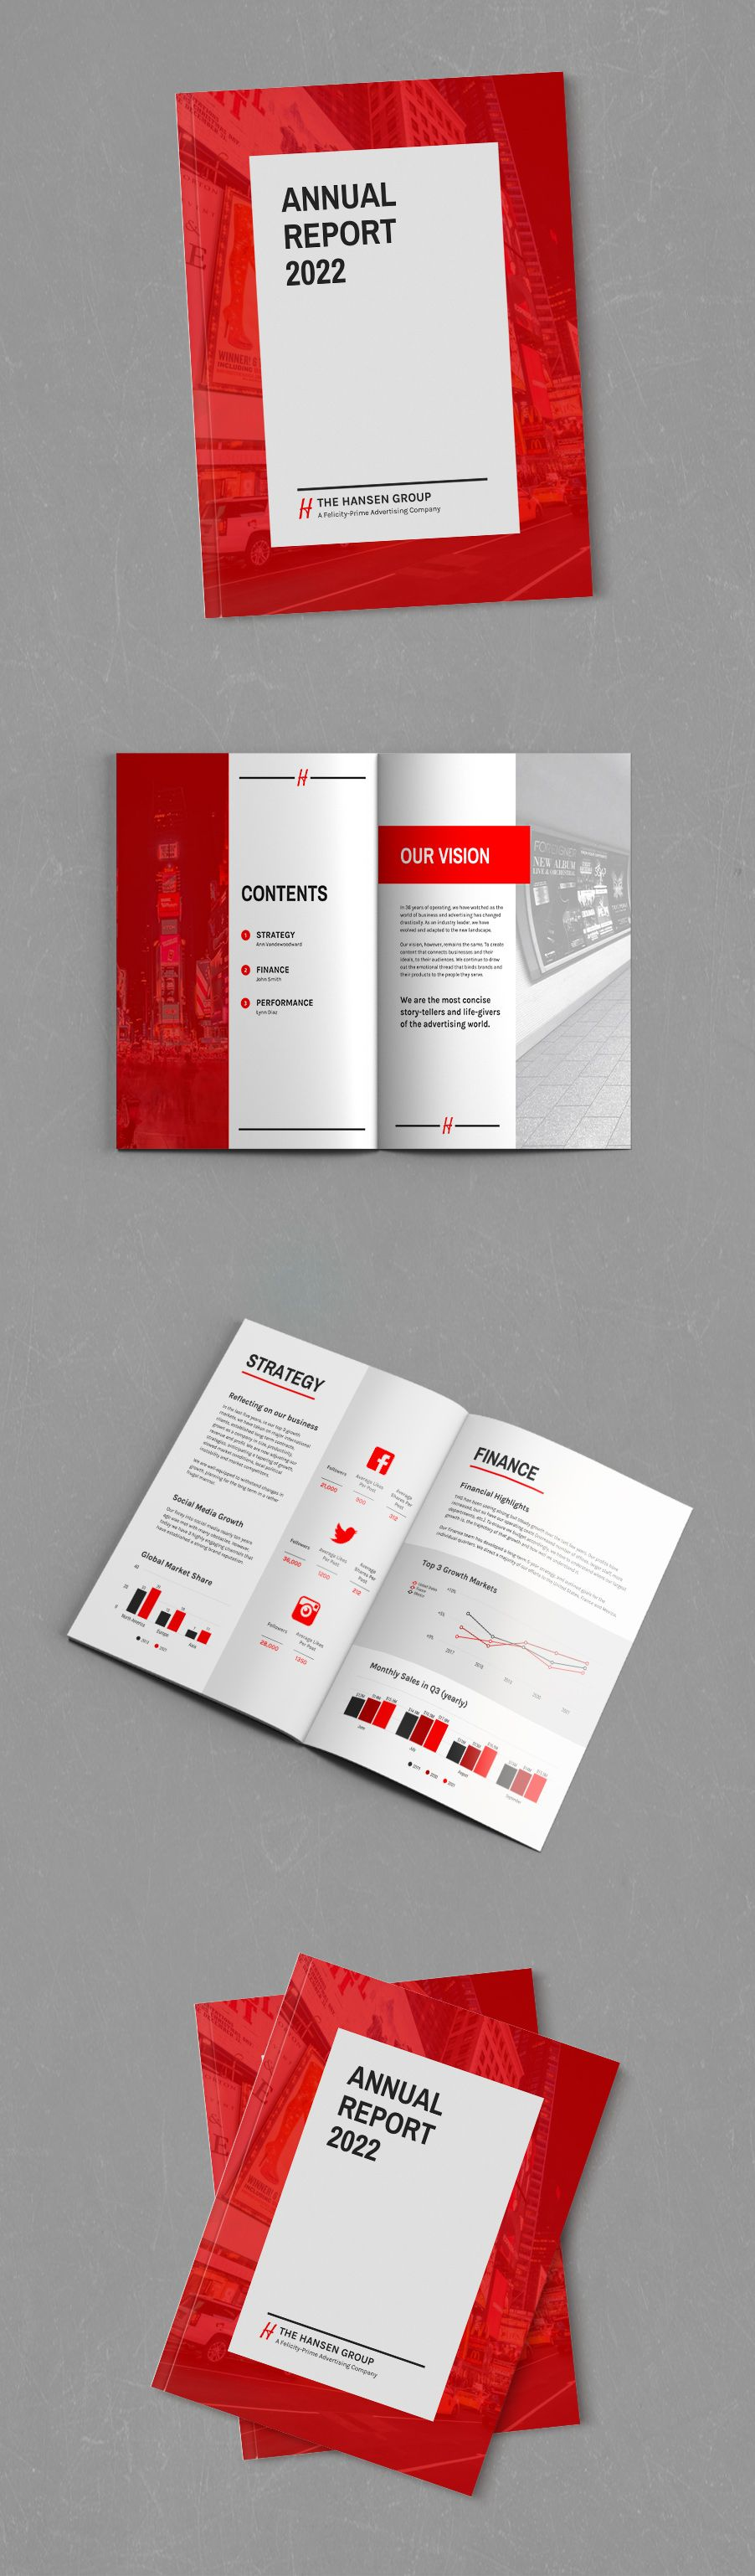 Corporate Annual Report Template #annualreports